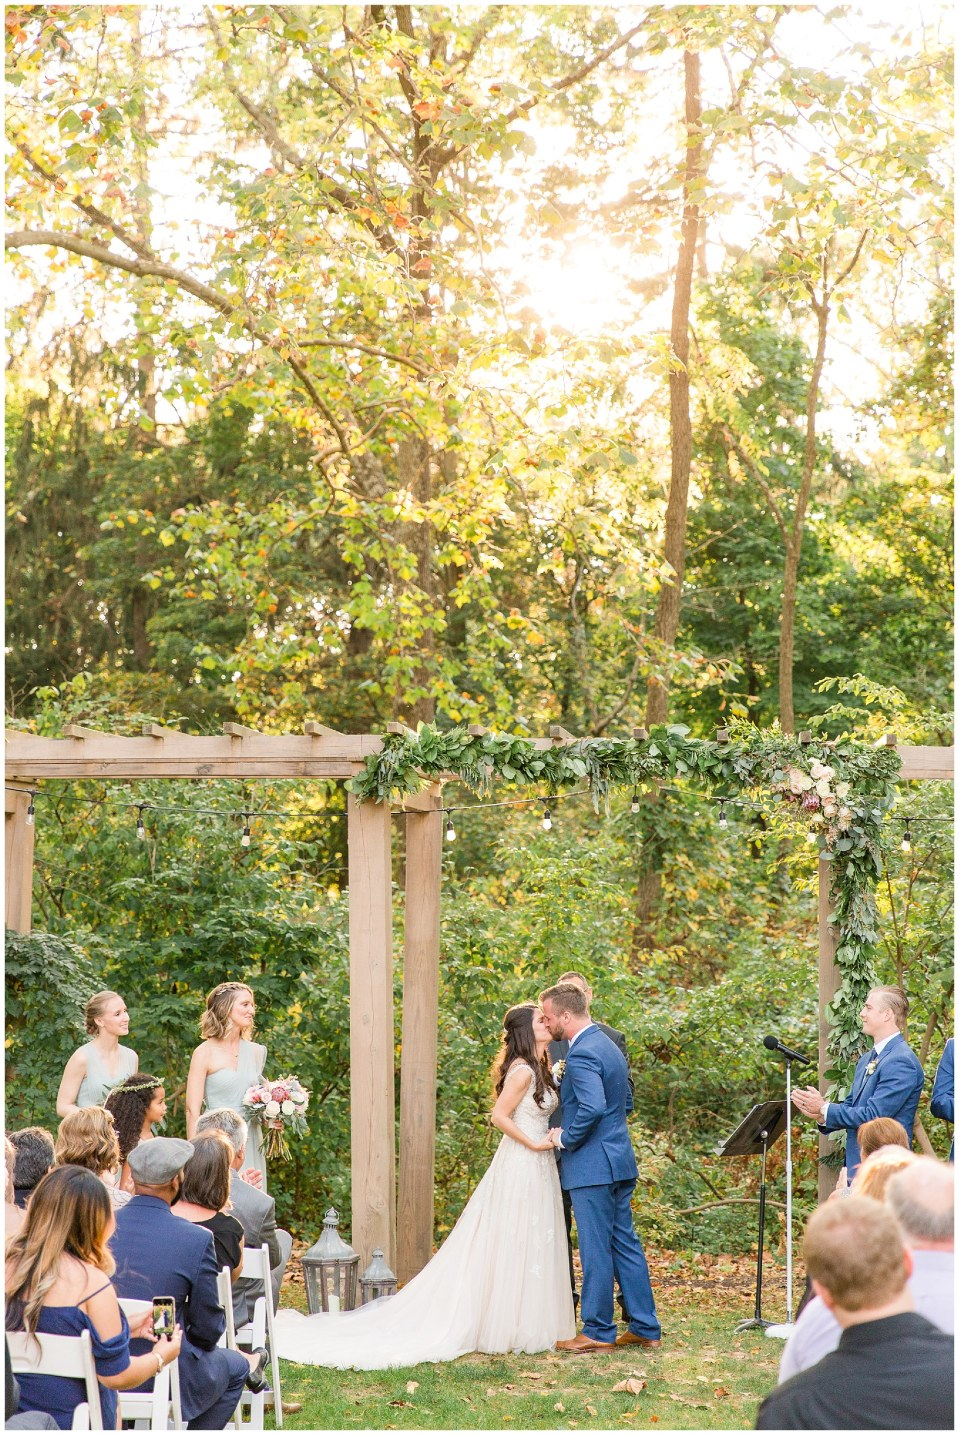 Frank & Kait's Whimsical Boho Inspired Wedding at Anthony Wayne House Photos_0079.jpg